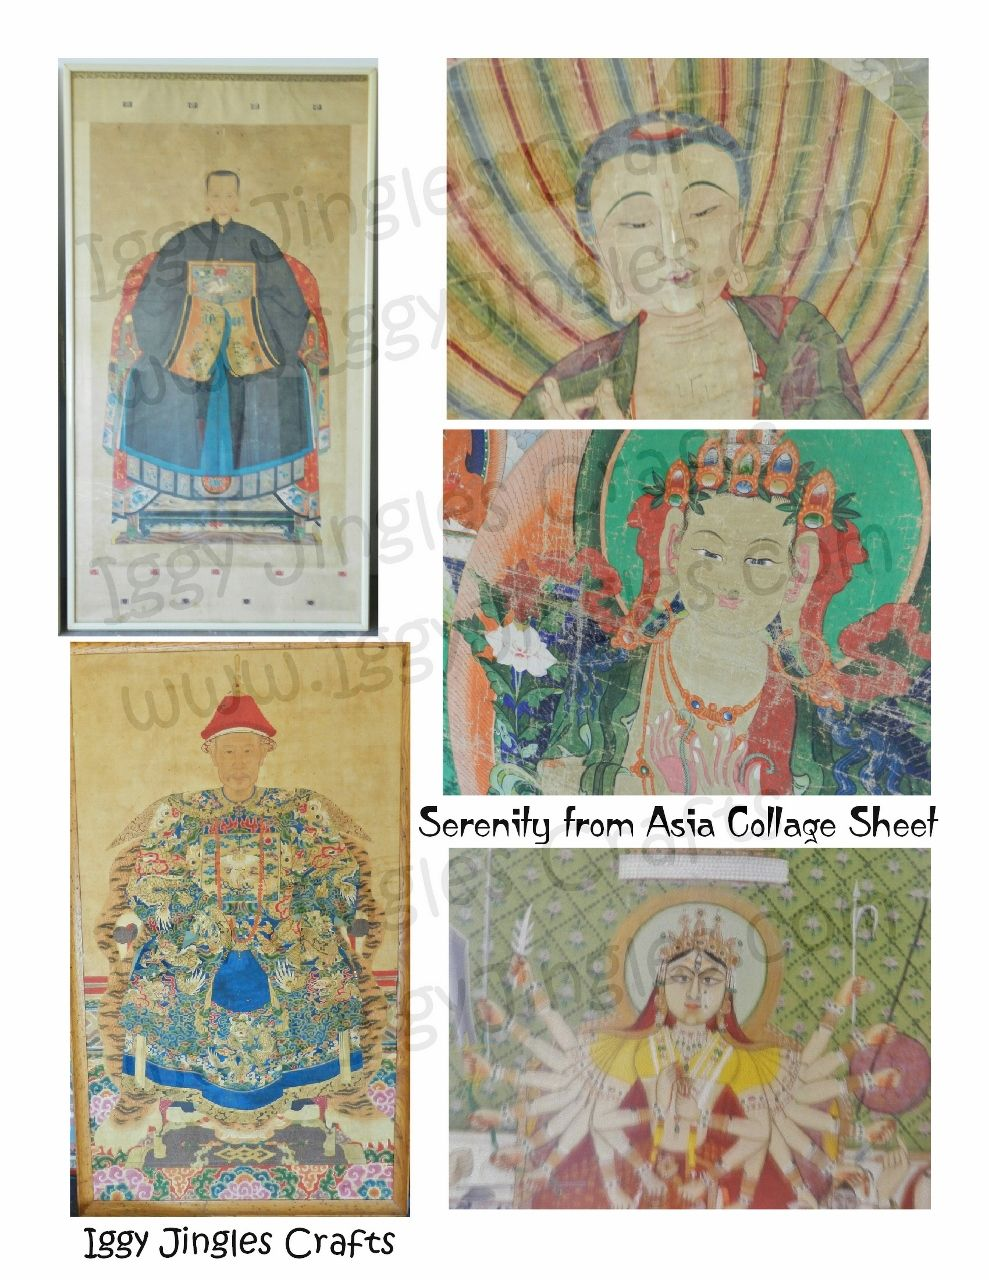 Serenity from Asia Collage Sheet